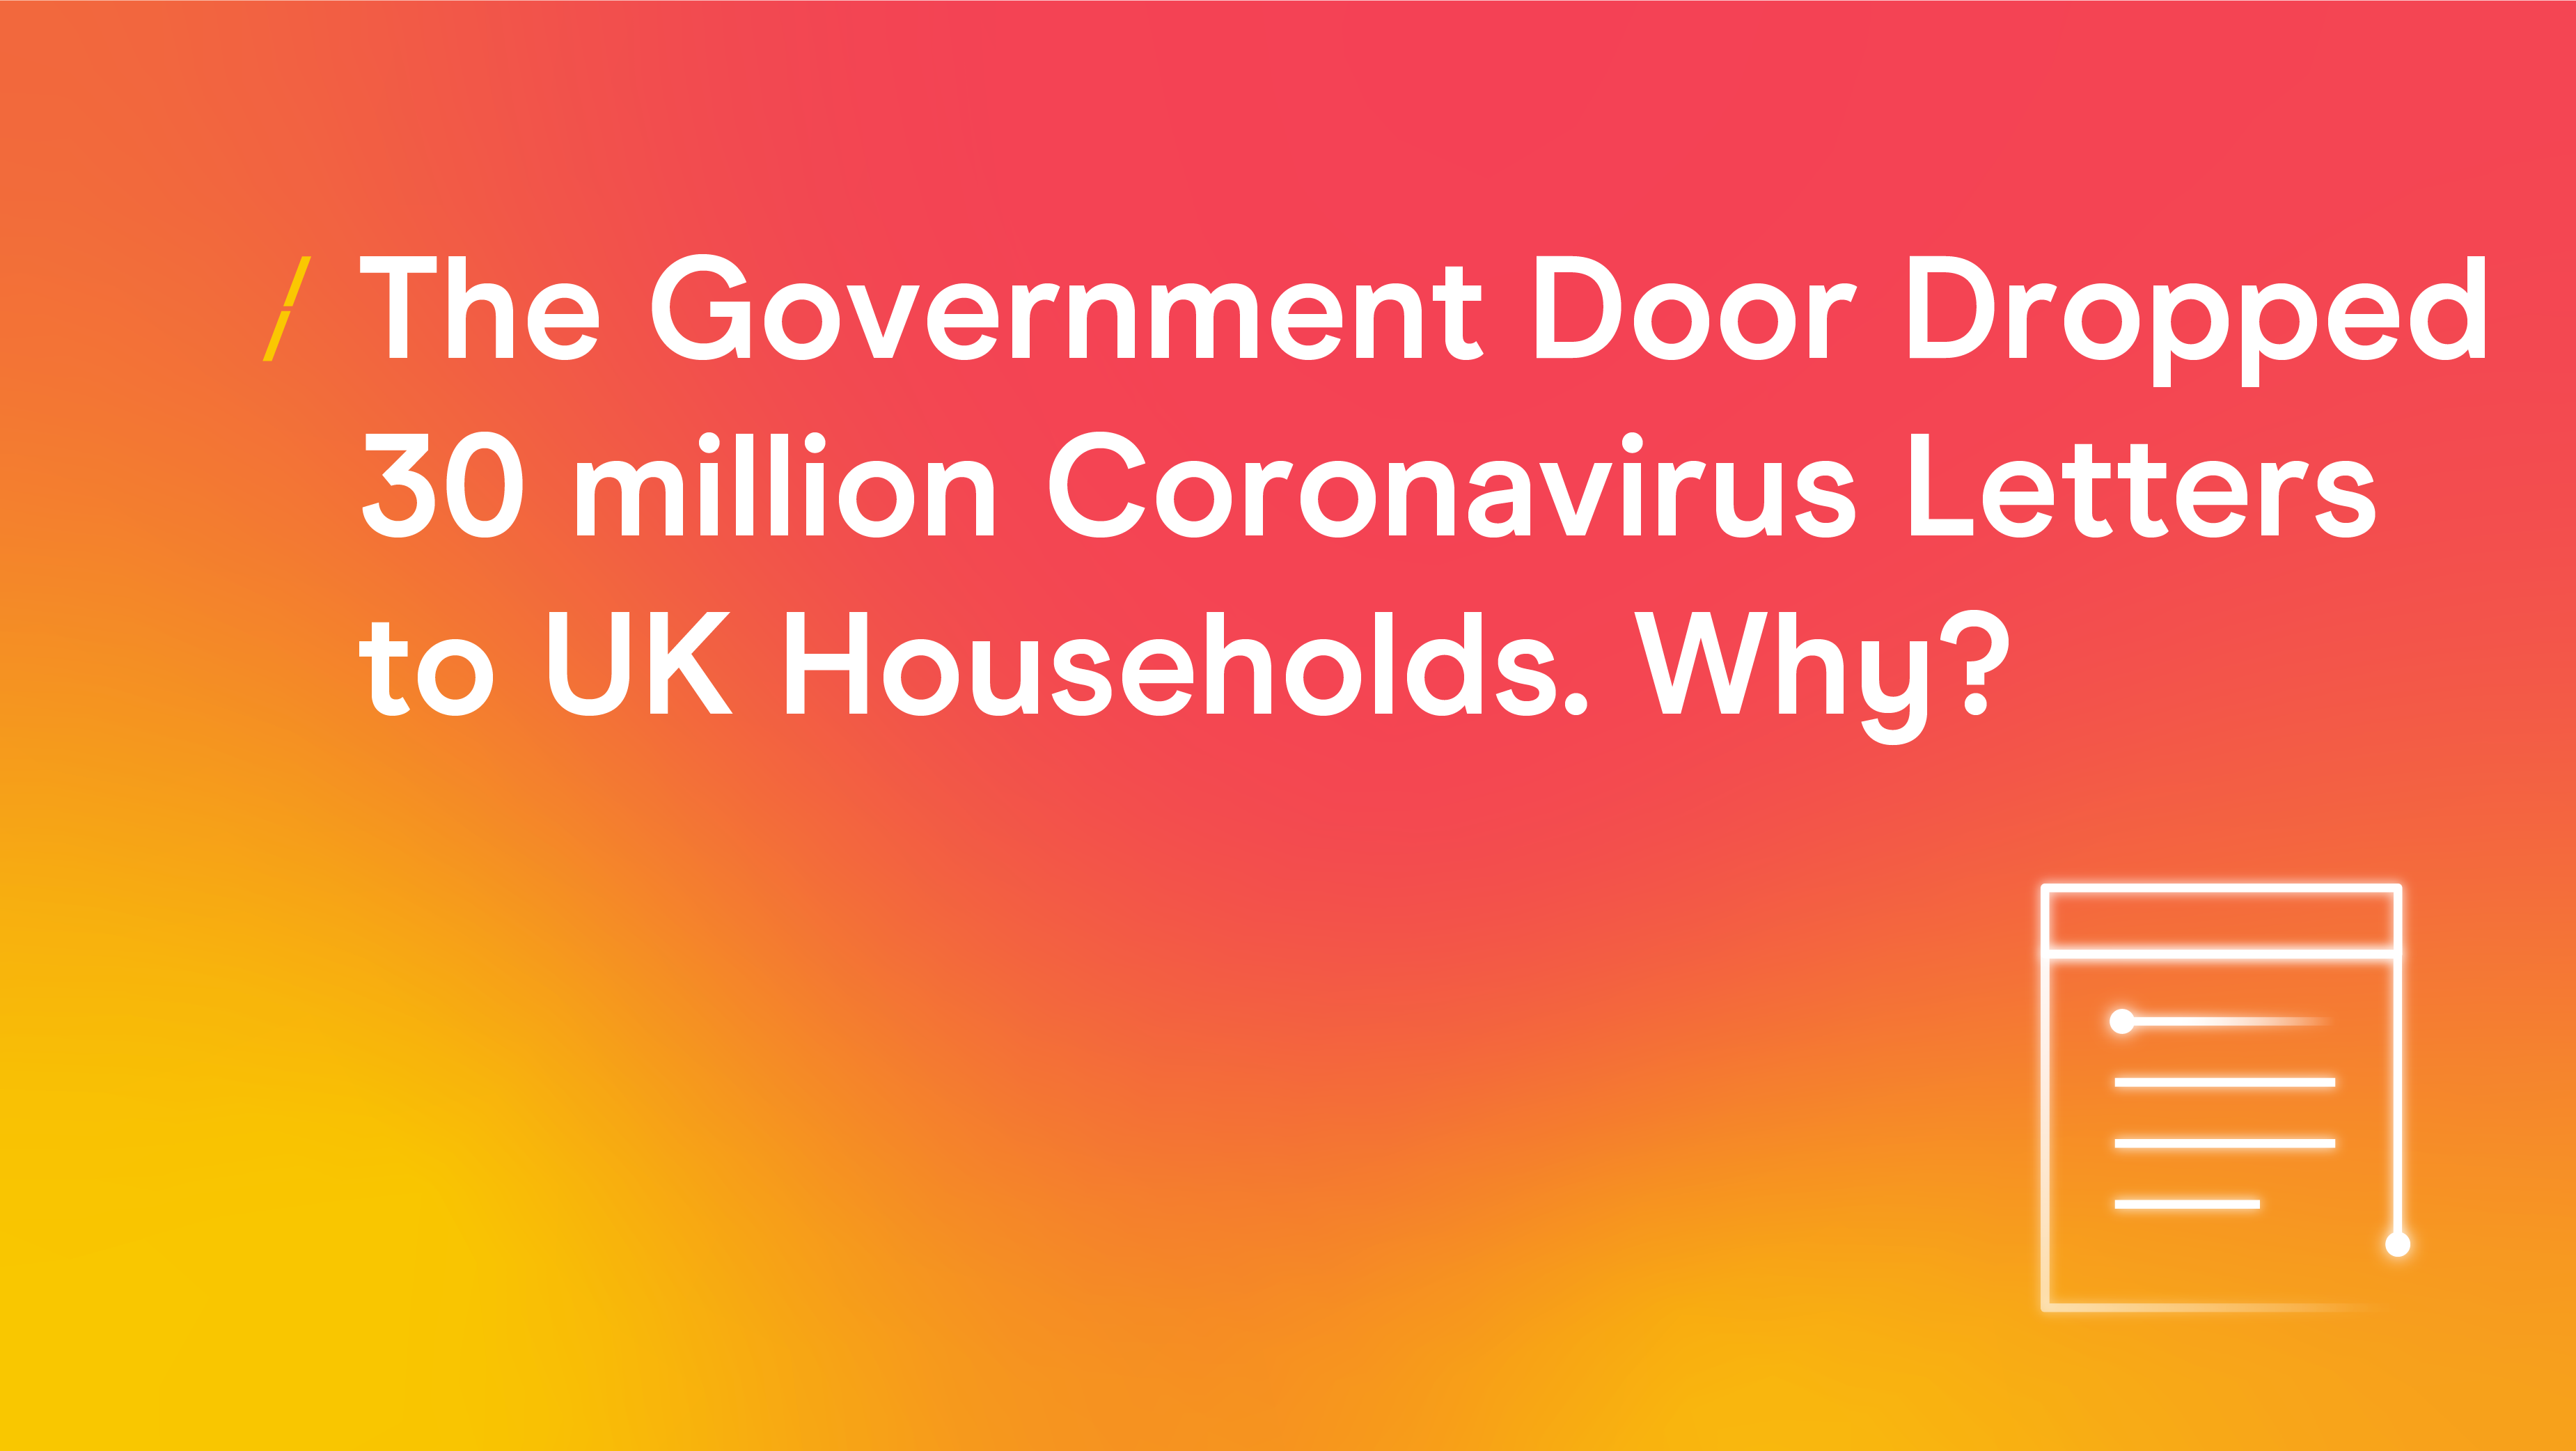 The Government Door Dropped 30 million Coronavirus Letters to UK Households_Events copy 4_Research articles copy 5.png